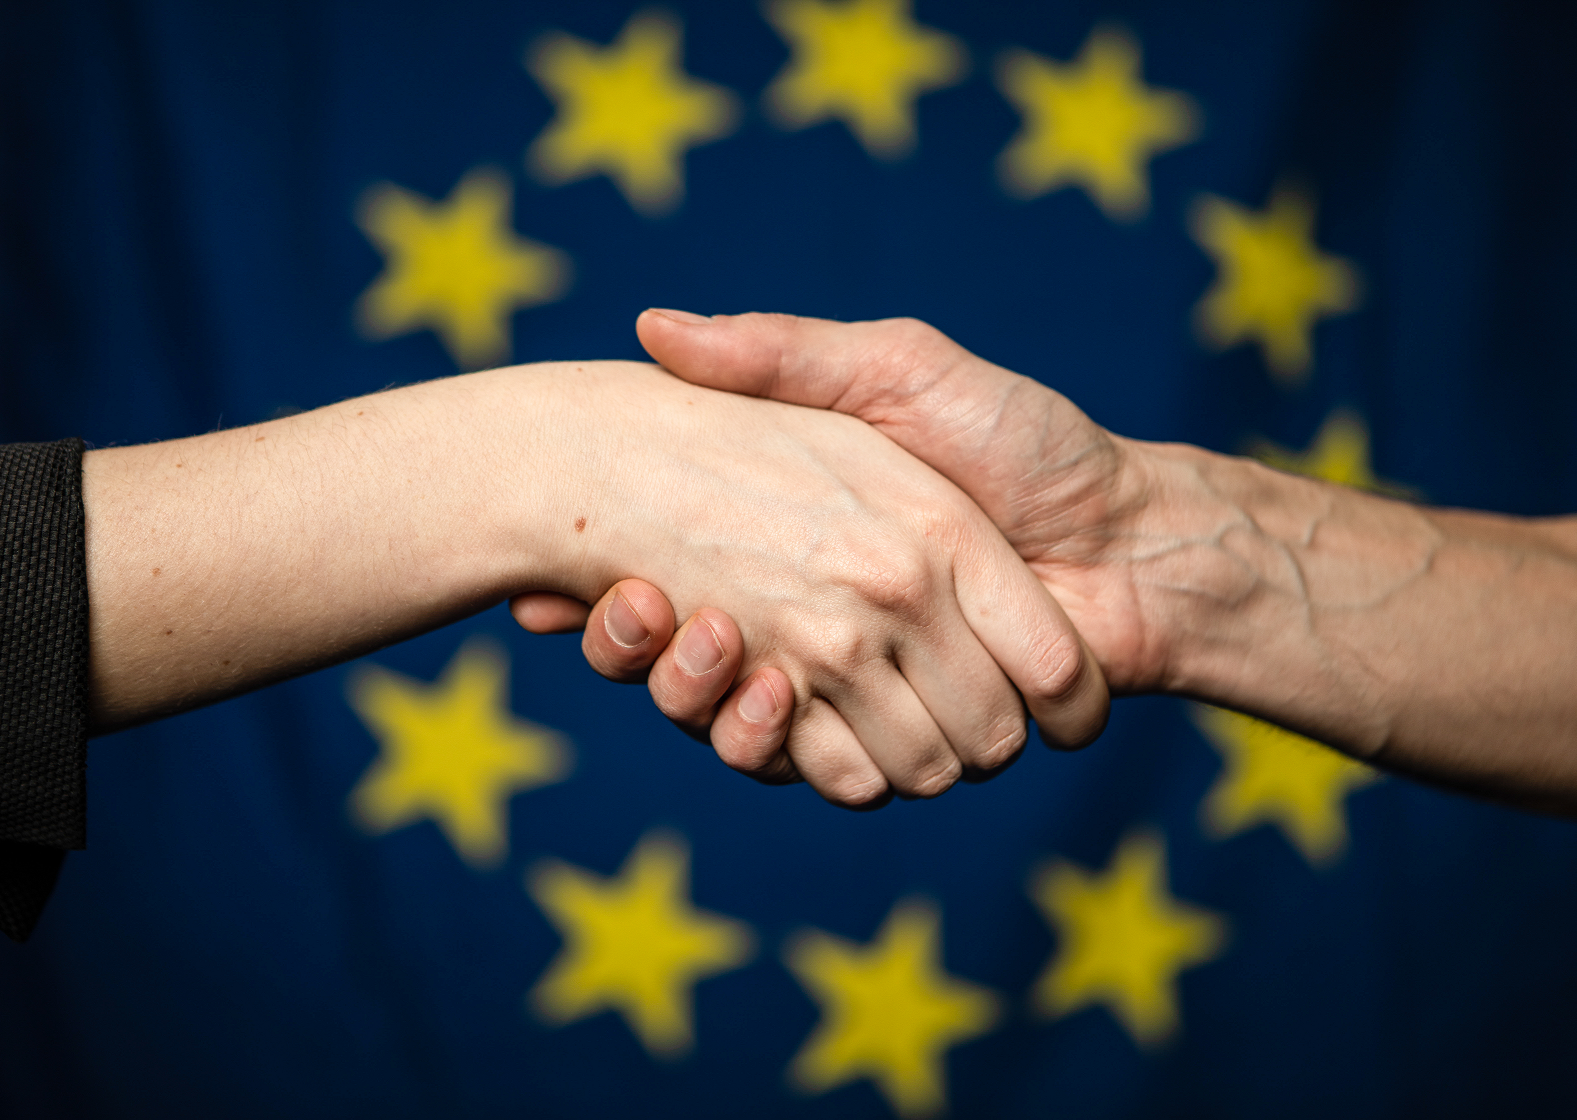 A handshake in front of the European flag